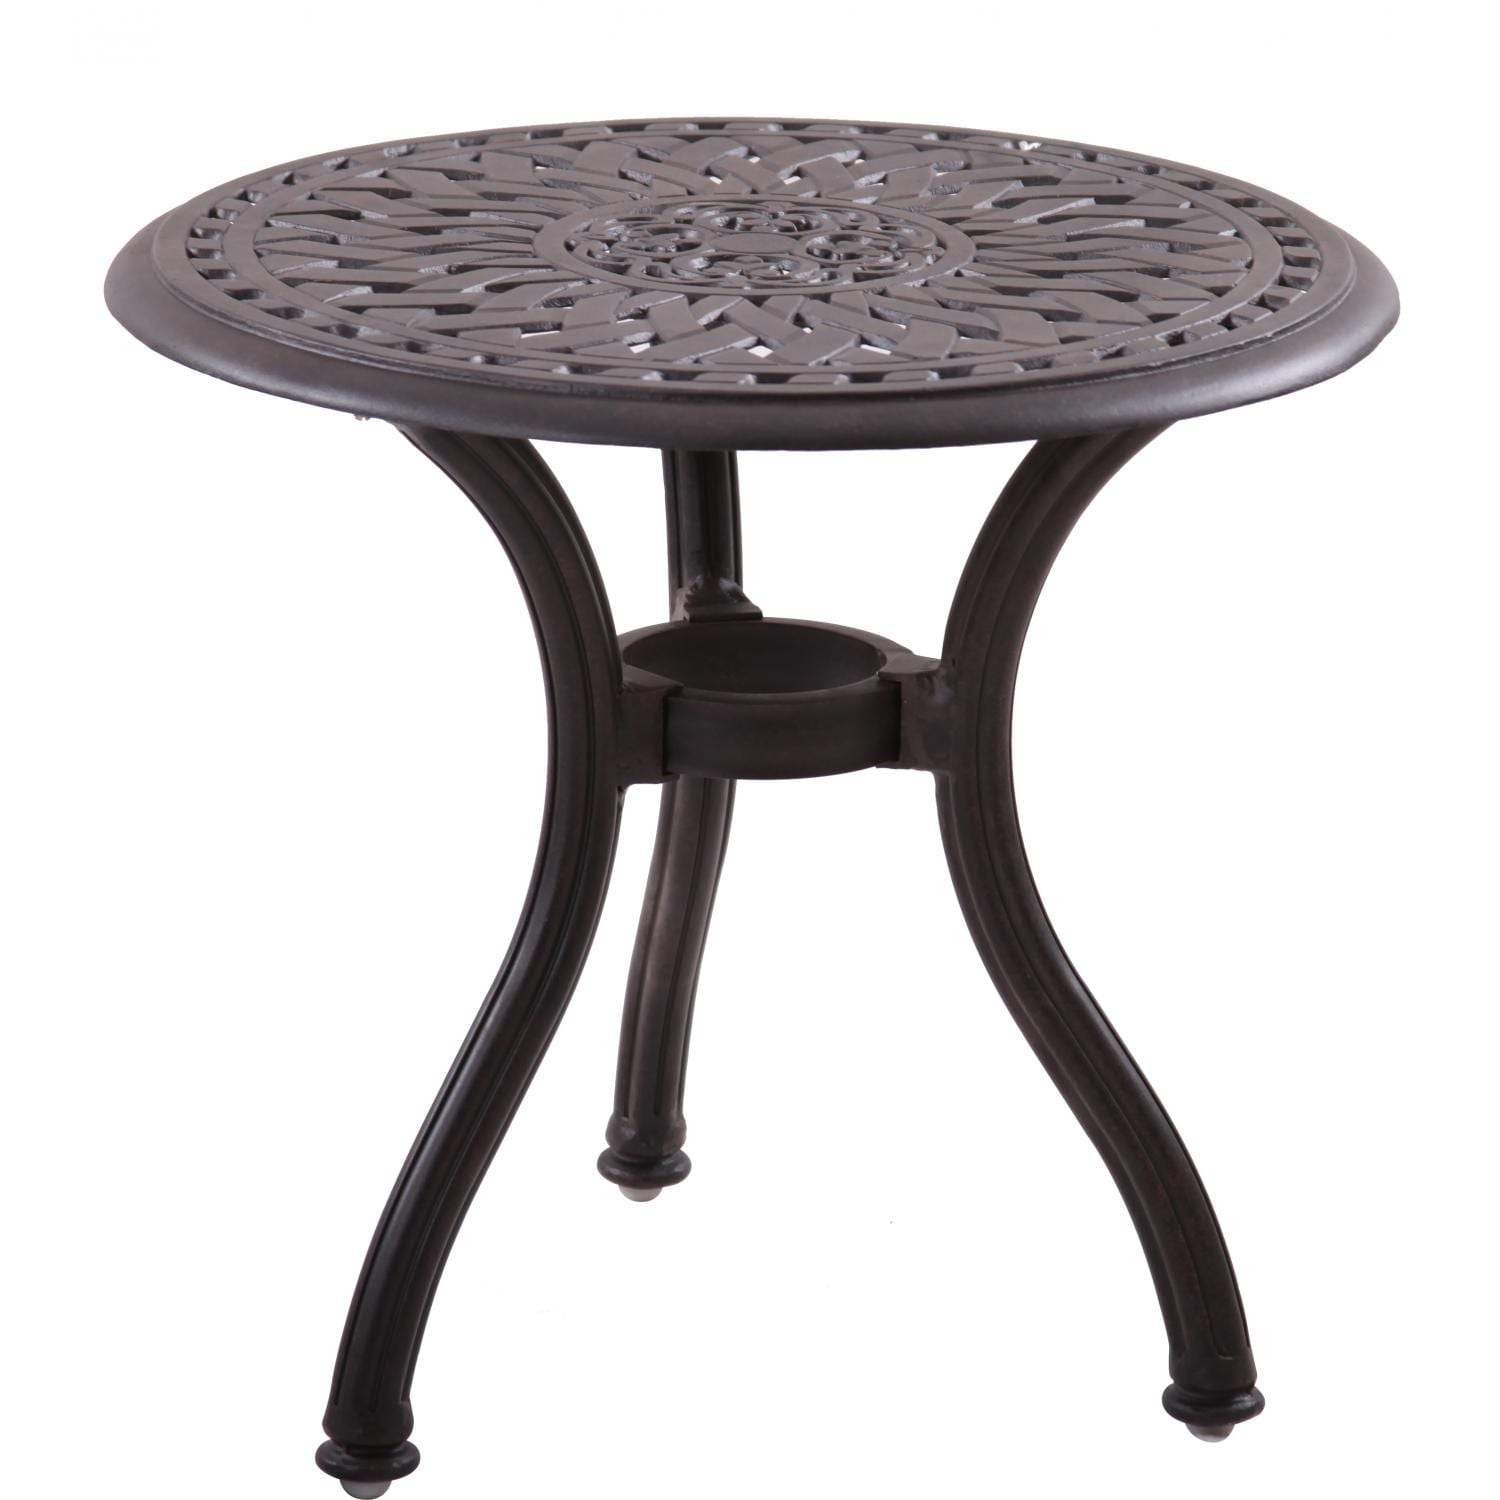 Round Patio Furniture Details About Darlee Series 60 Cast Aluminum Round Patio End Table Mocha